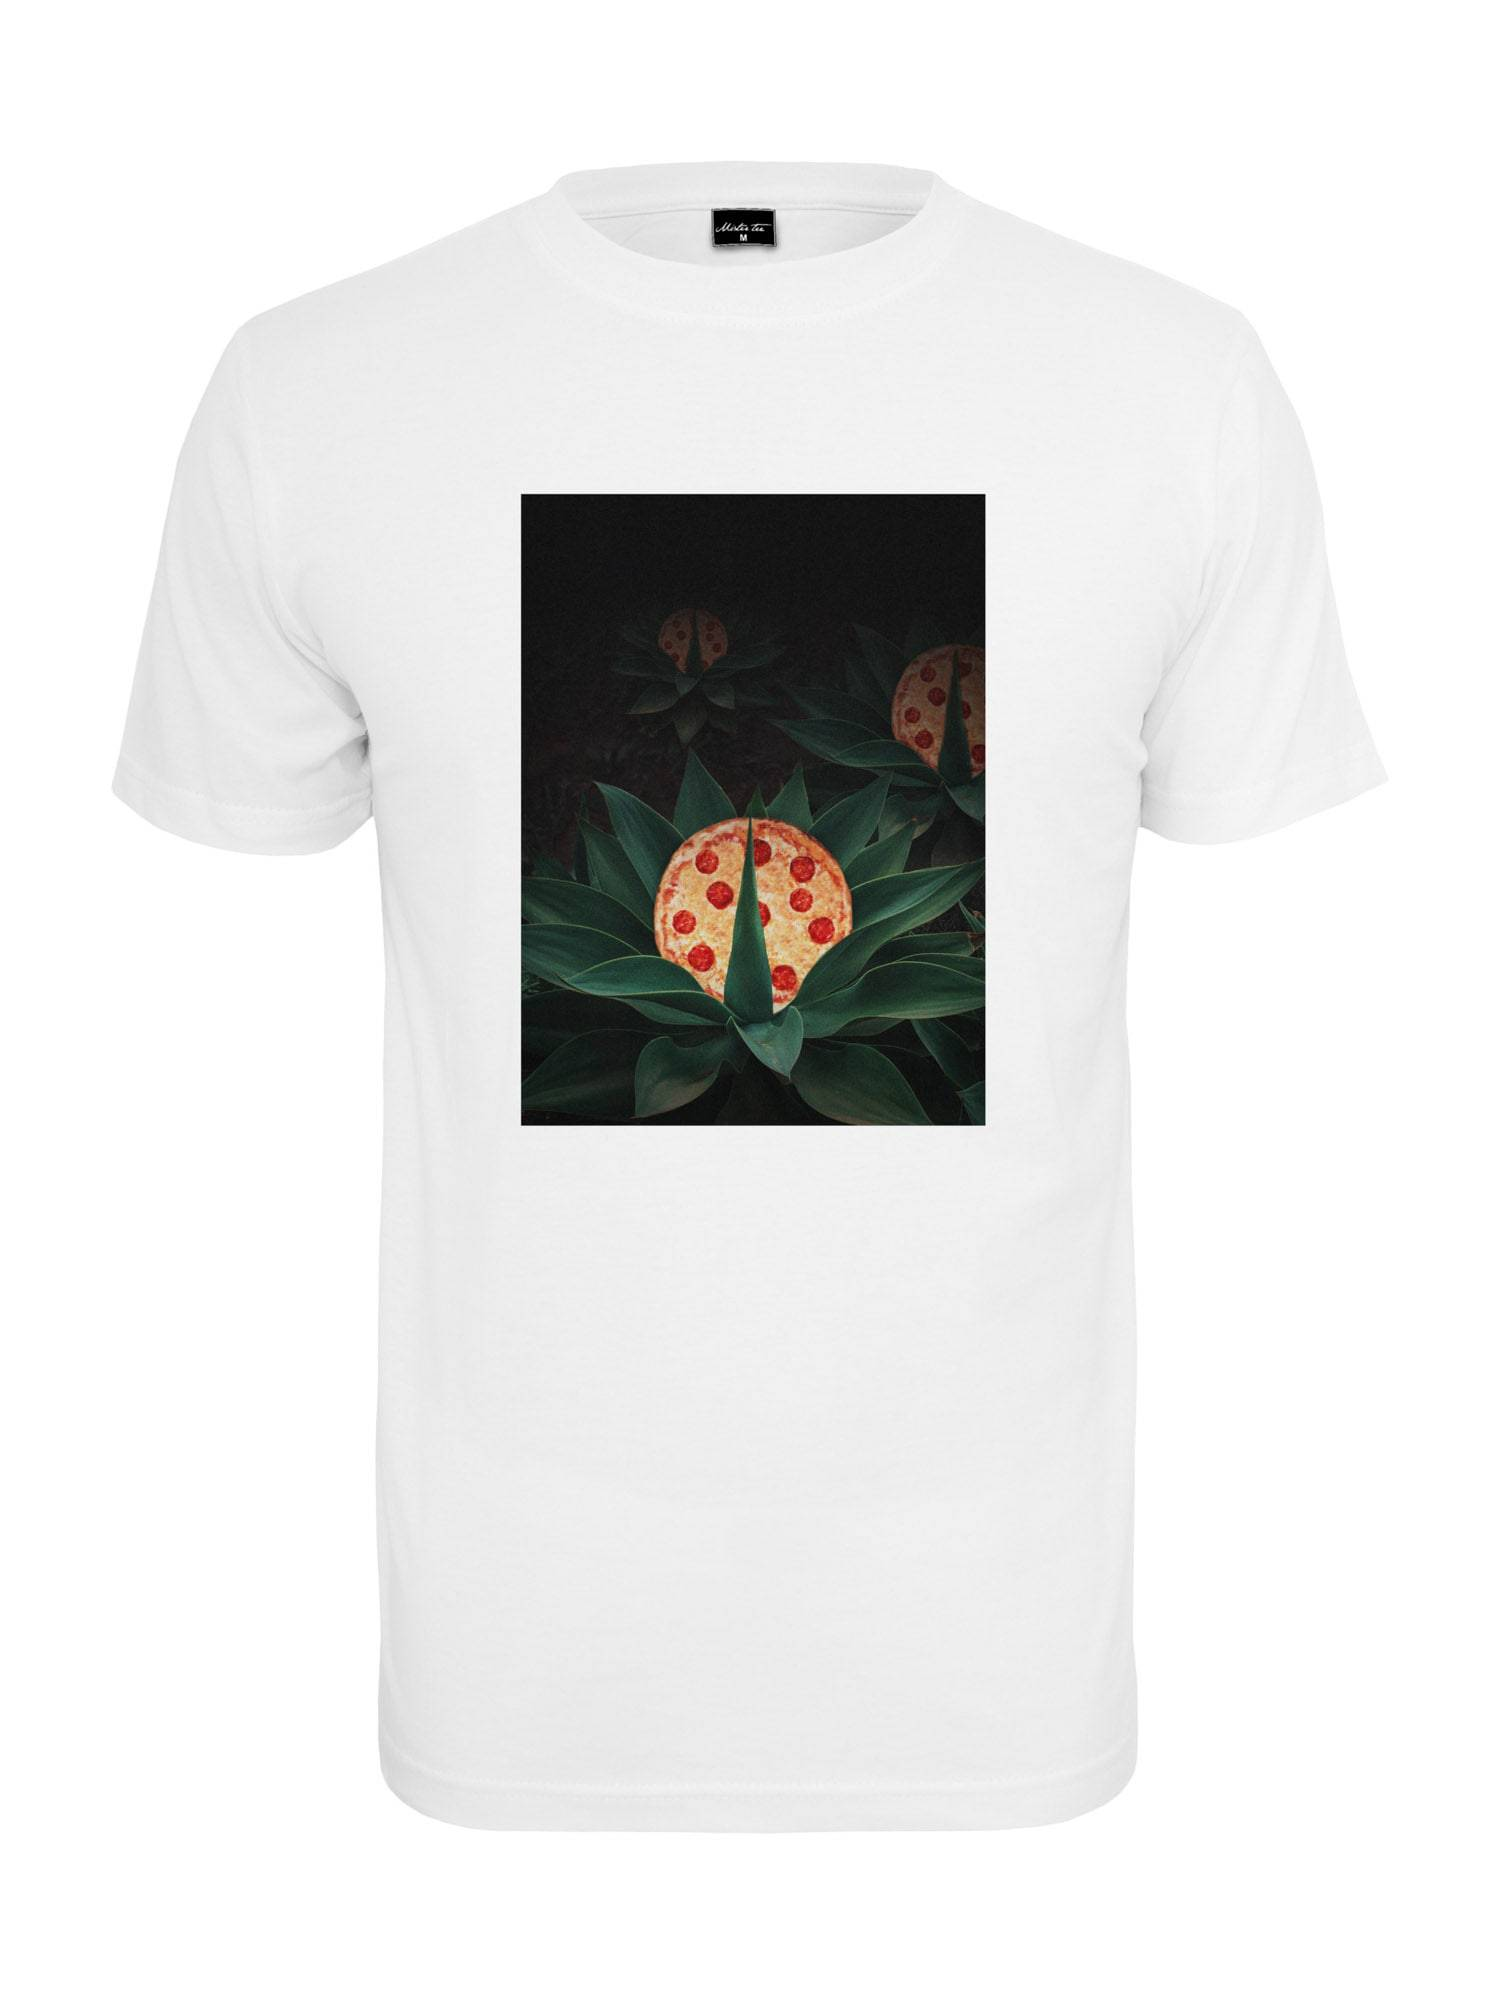 Tee T-Shirt 'Pizza Plant''  - Blanc - Taille: S - male